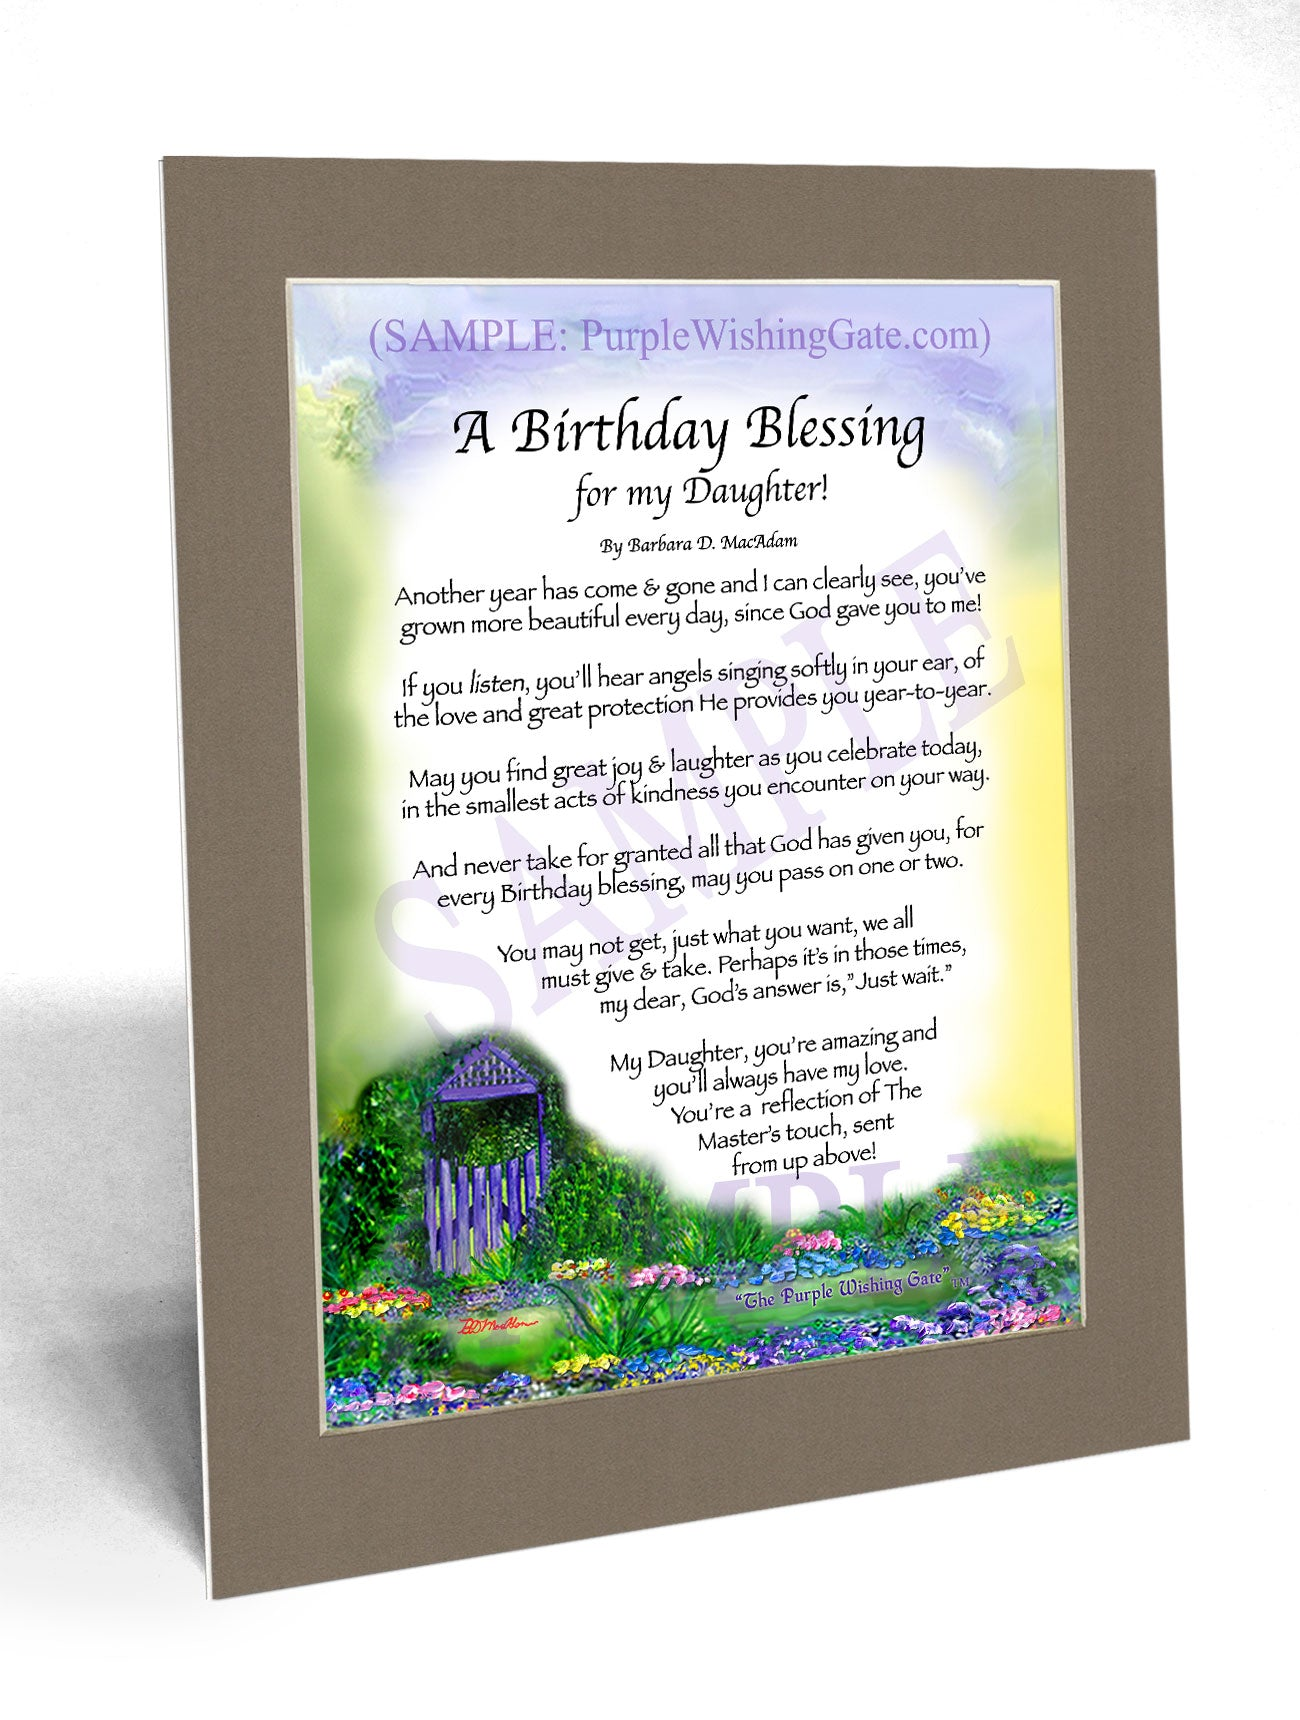 A Birthday Blessing for my Daughter! - Birthday Gift - PurpleWishingGate.com